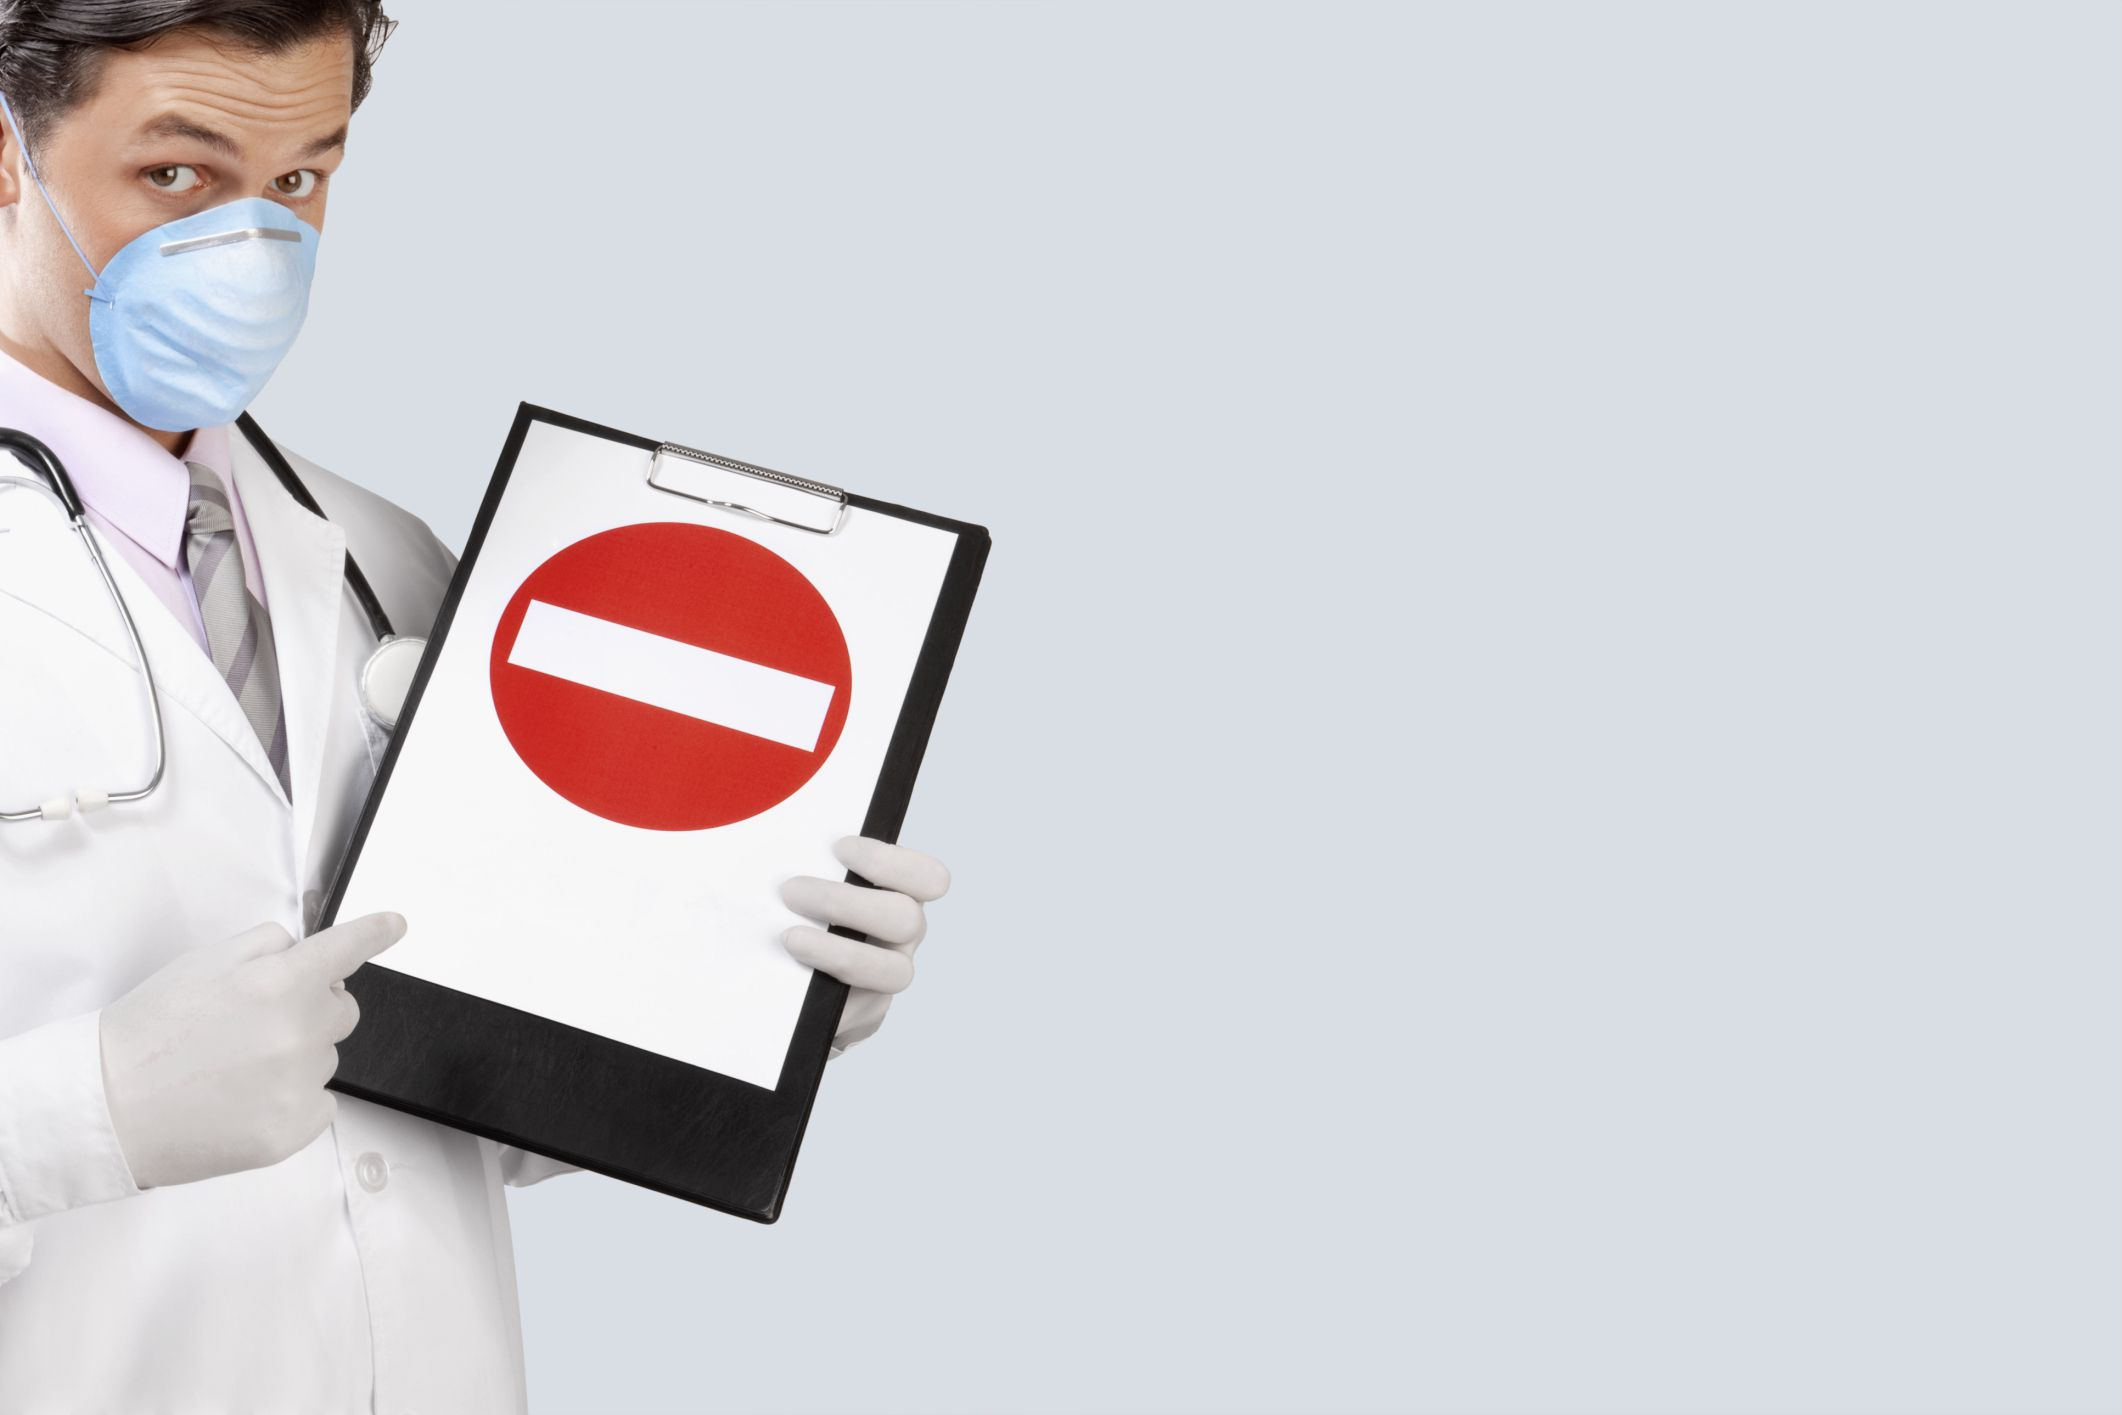 Doctor with face mask holding a clipboard facing the camera that bears an image of a minus sign inside a red circle